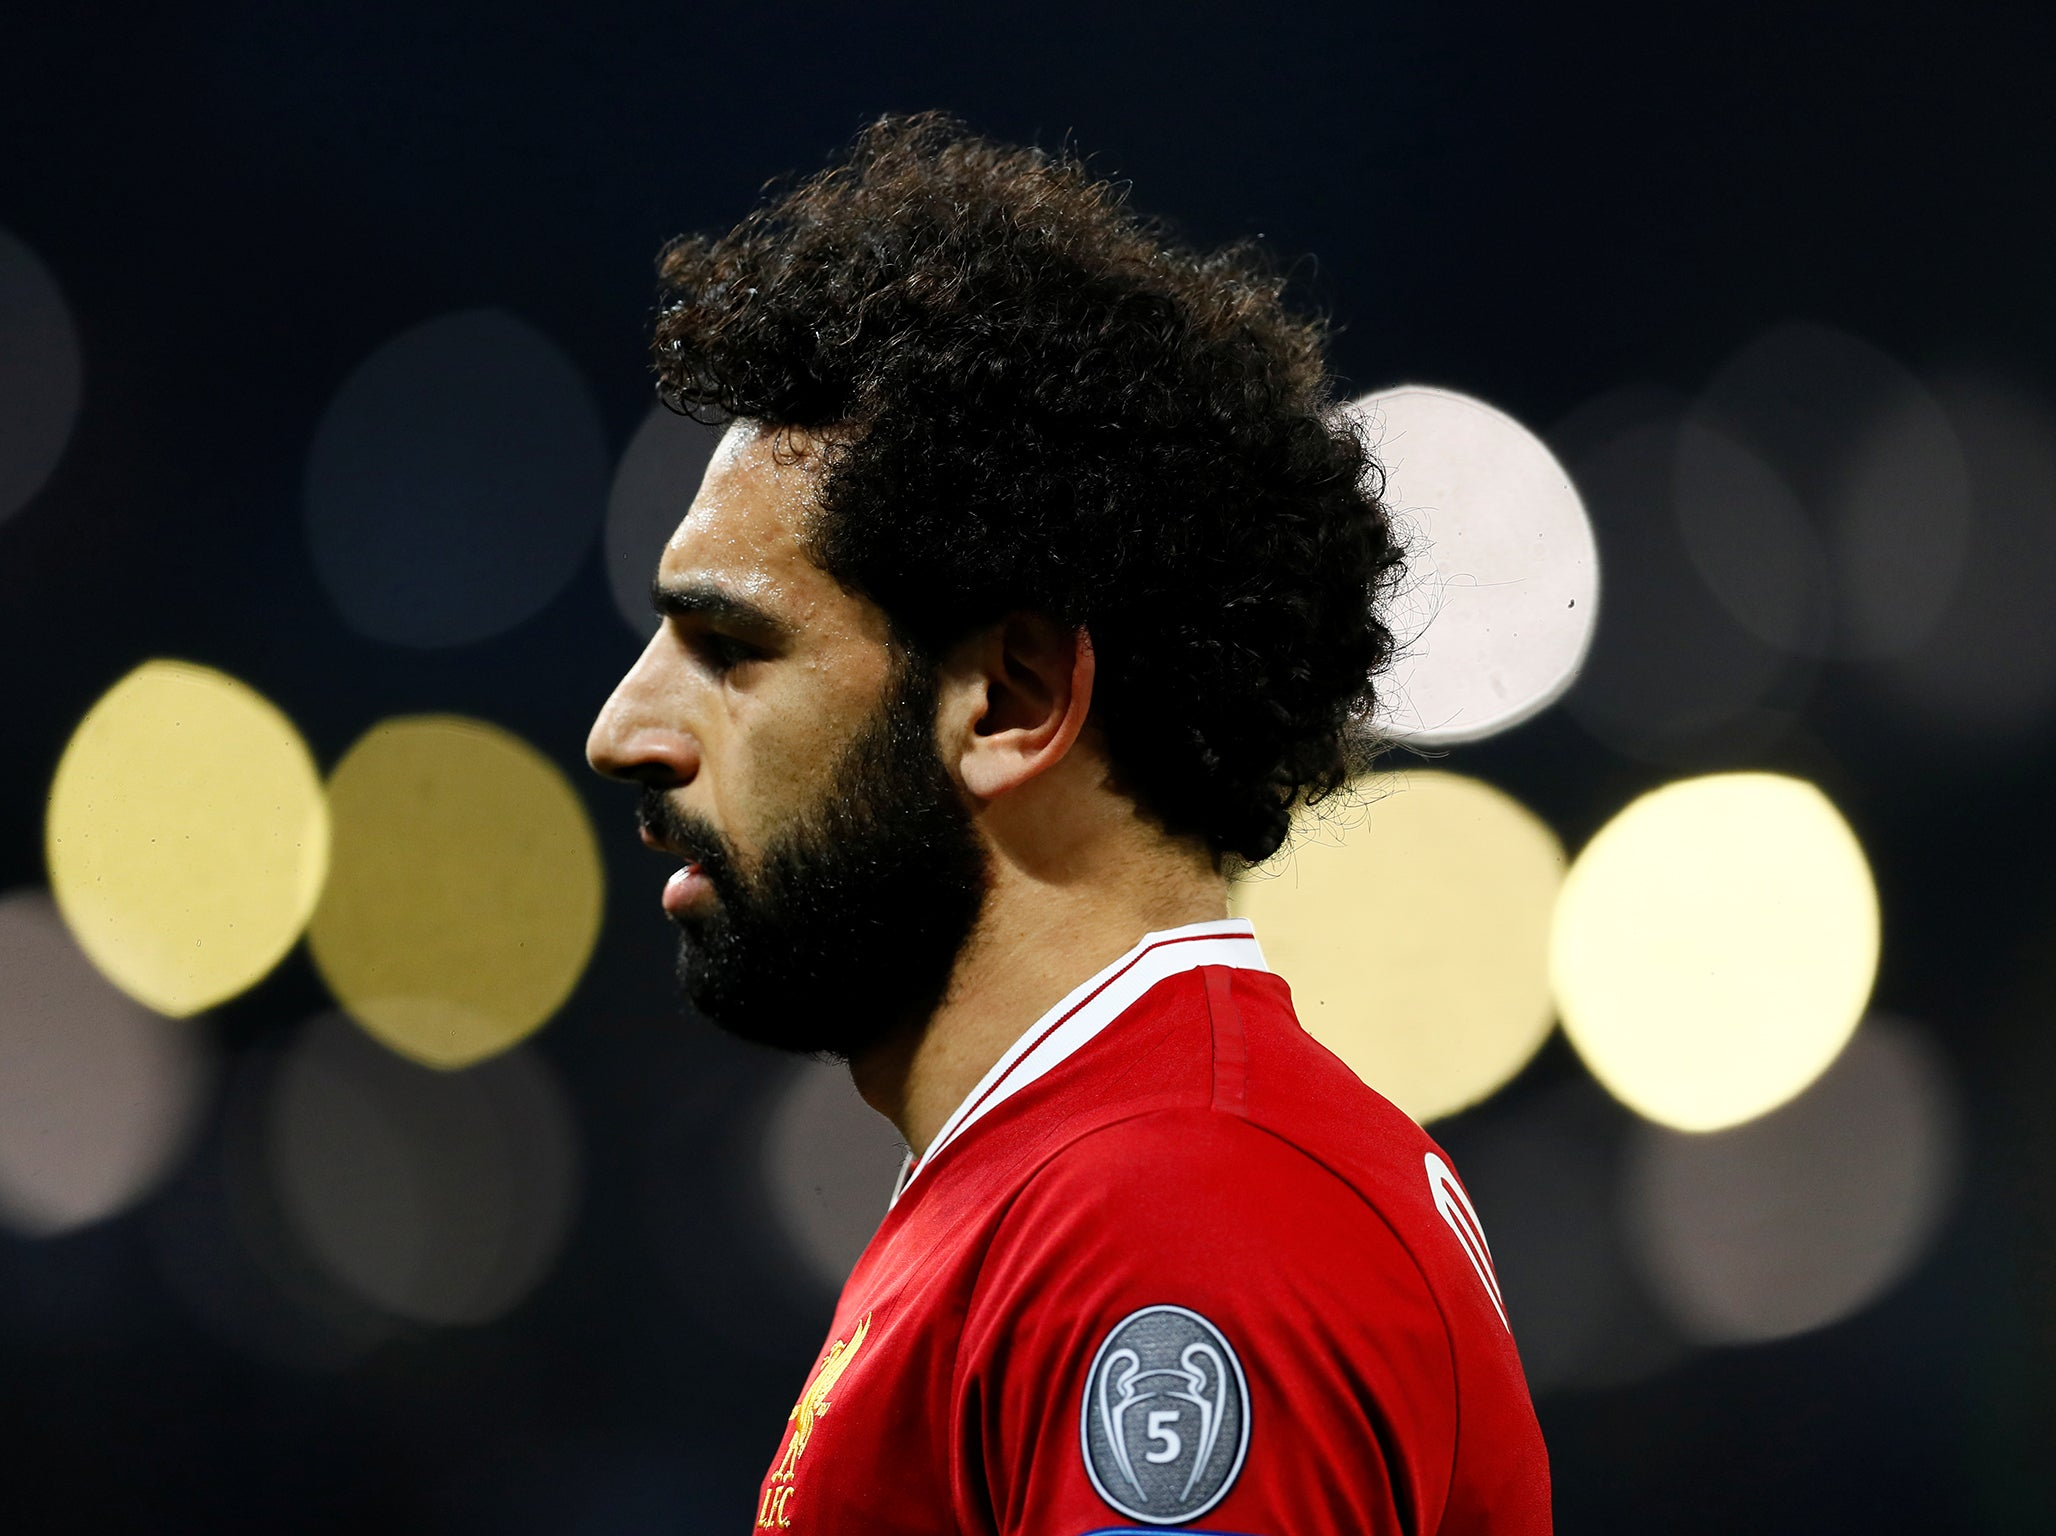 What Mohamed Salah's fairytale rise at Liverpool tells us about the simple, uplifting power of stories